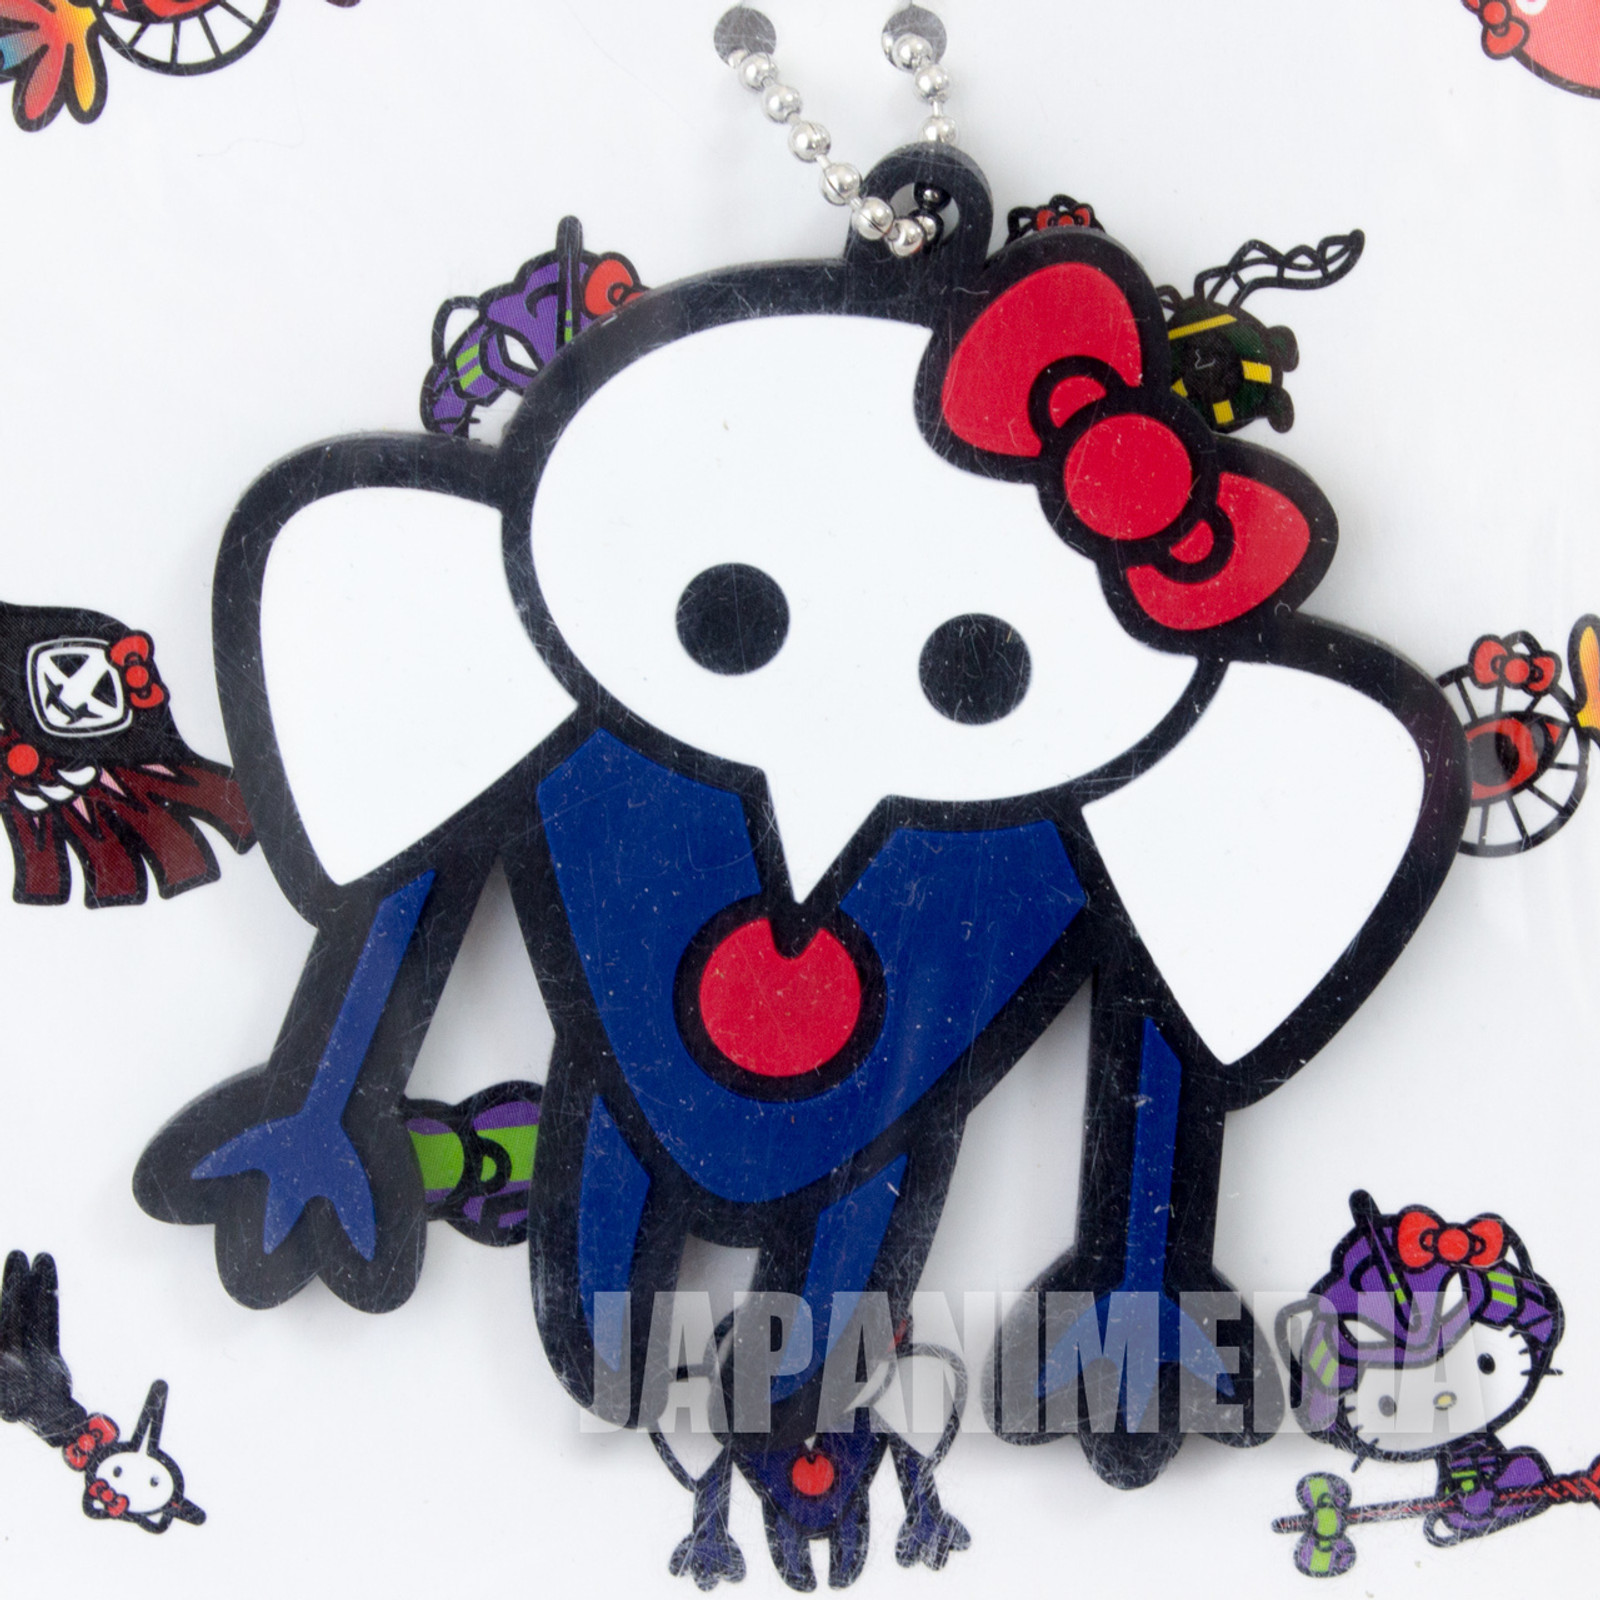 Evangelion Sachiel x Hello Kitty Rubber Mascot Ballchain JAPAN ANIME MANGA